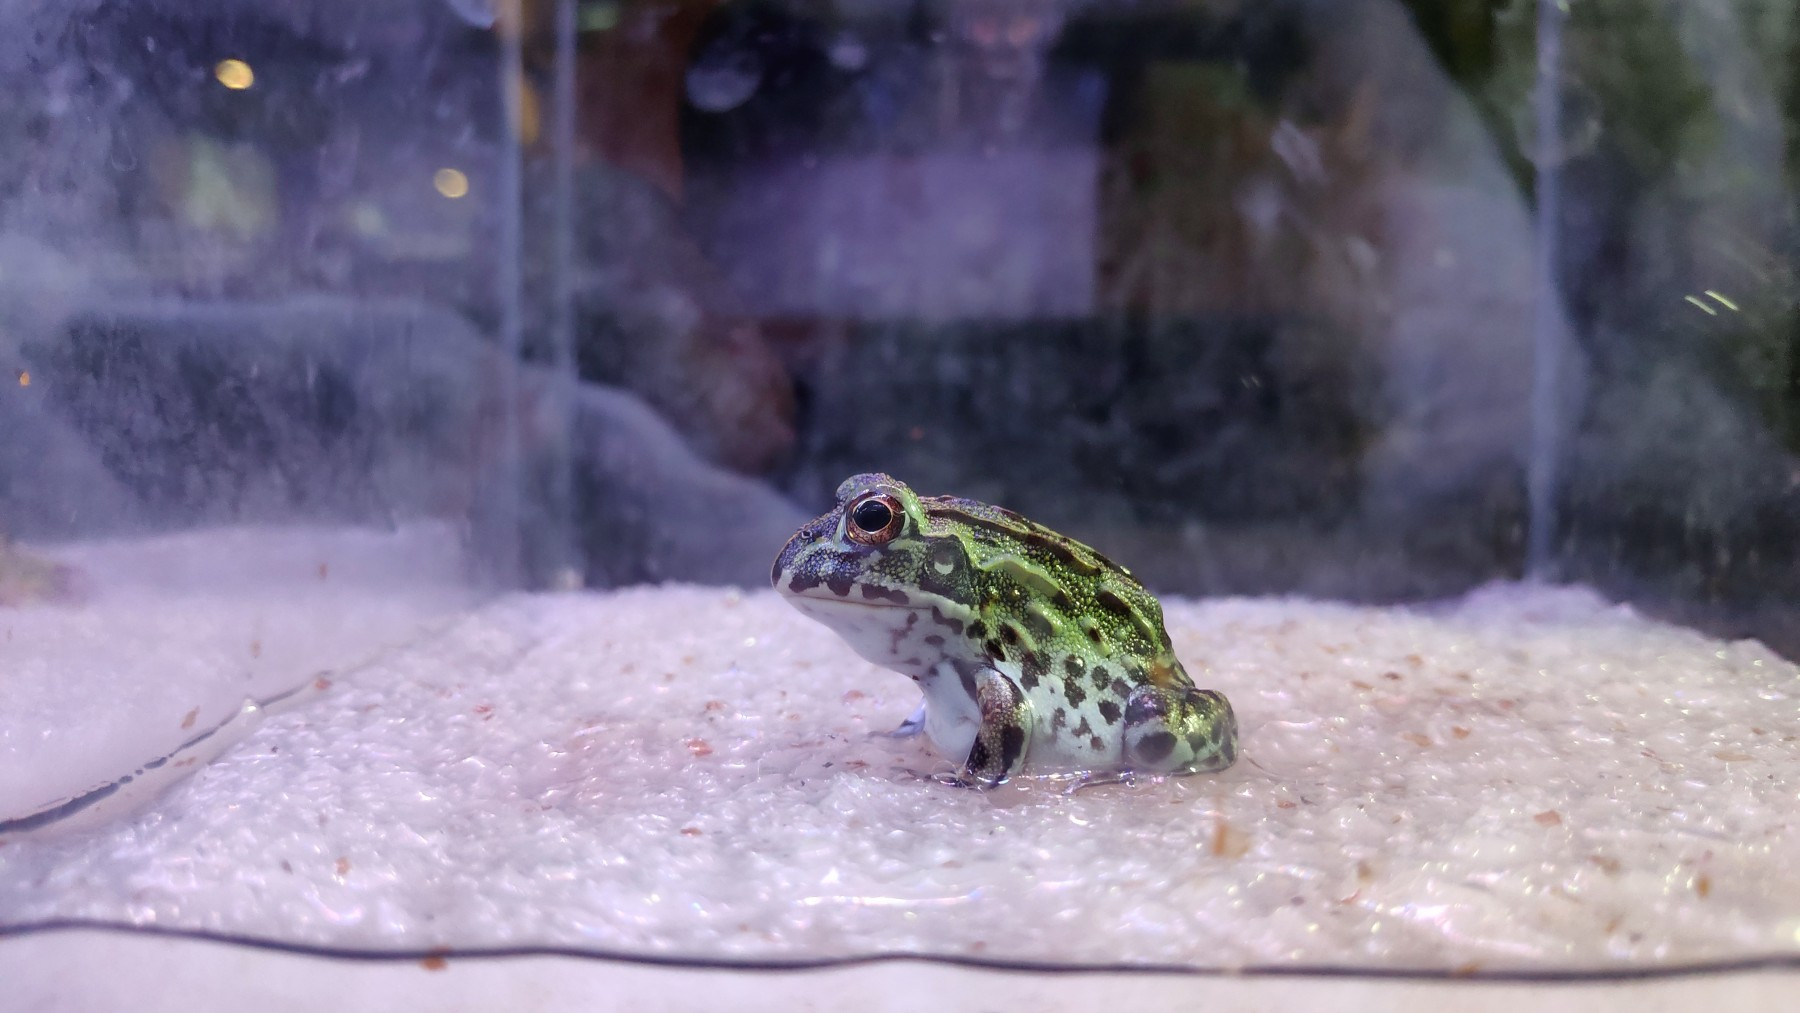 A Pacman frog in a tank